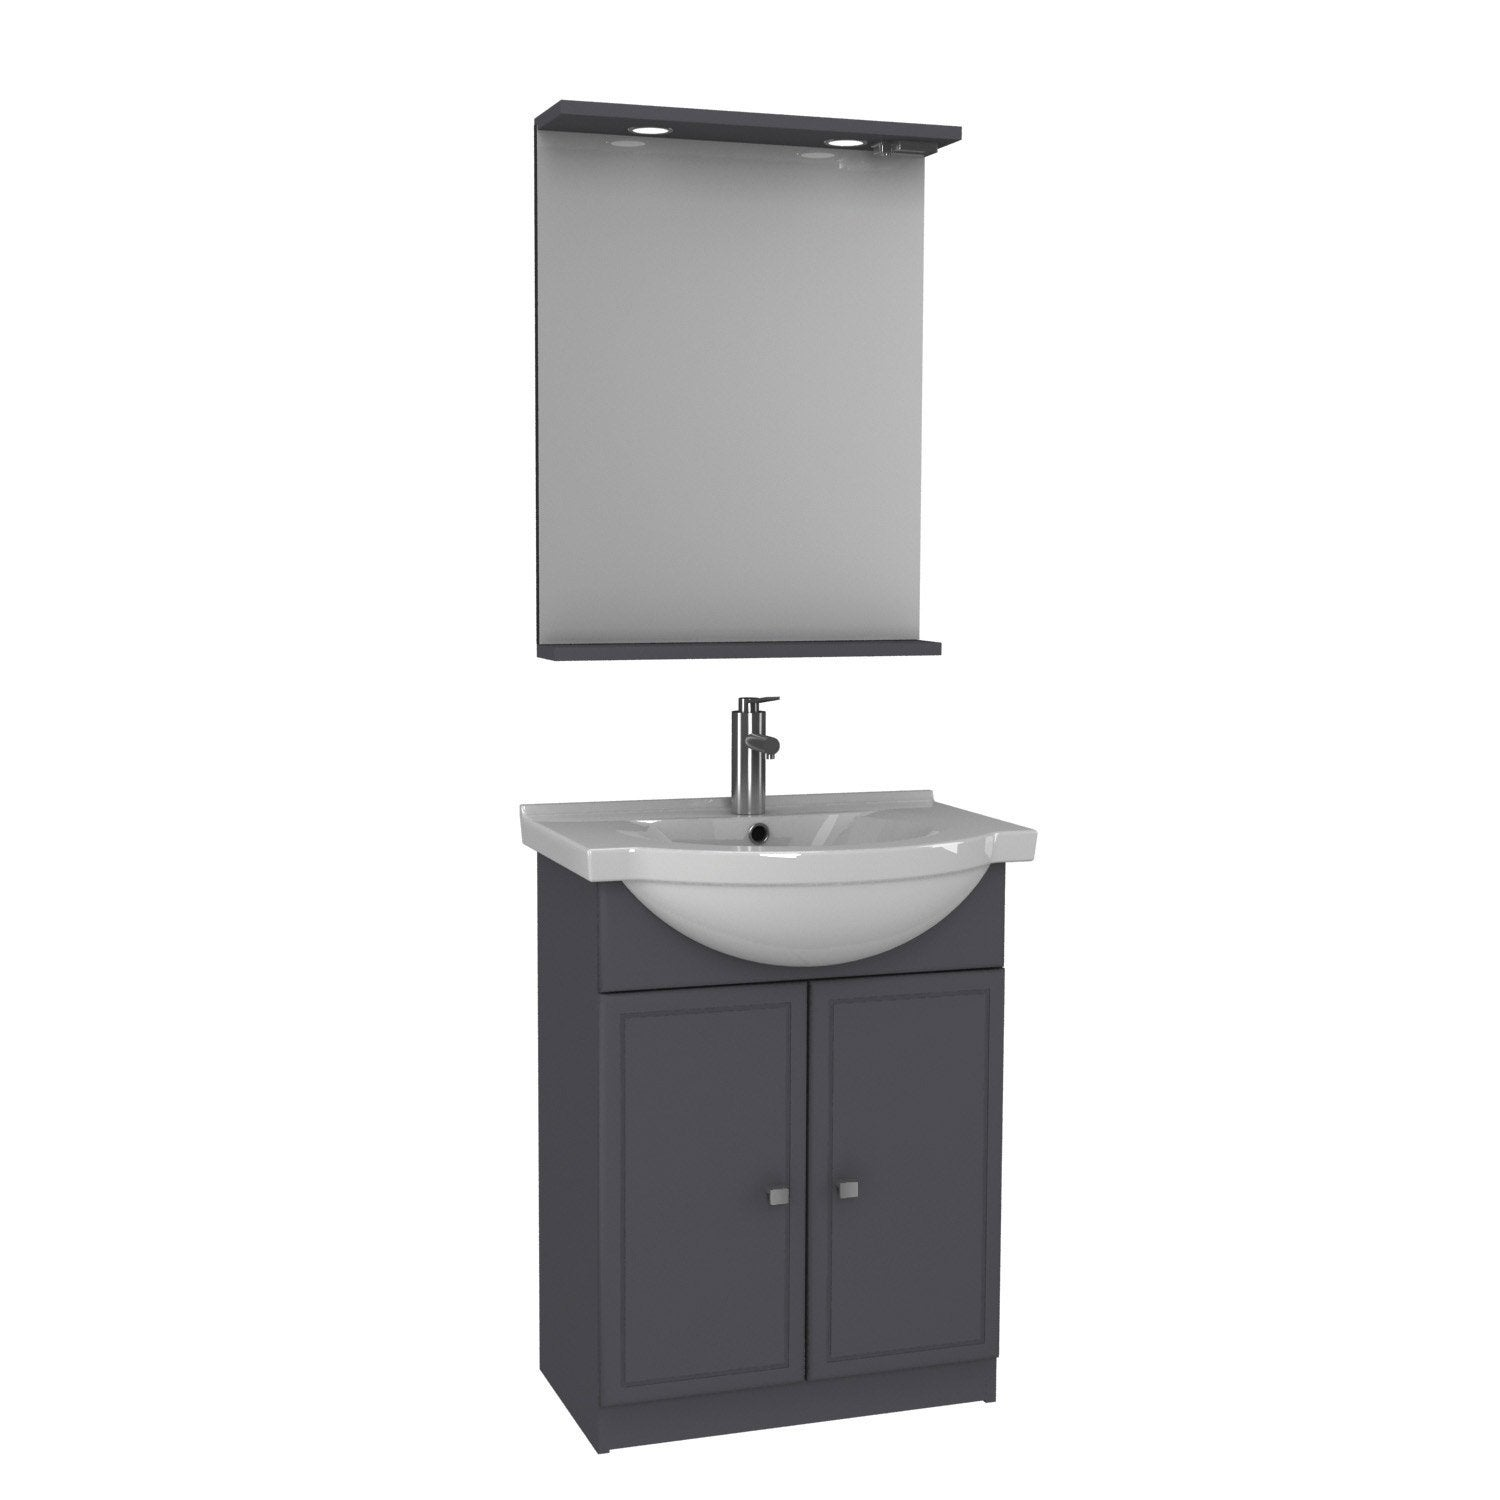 Meuble vasque 65 cm galice leroy merlin for Ensemble lavabo meuble leroy merlin